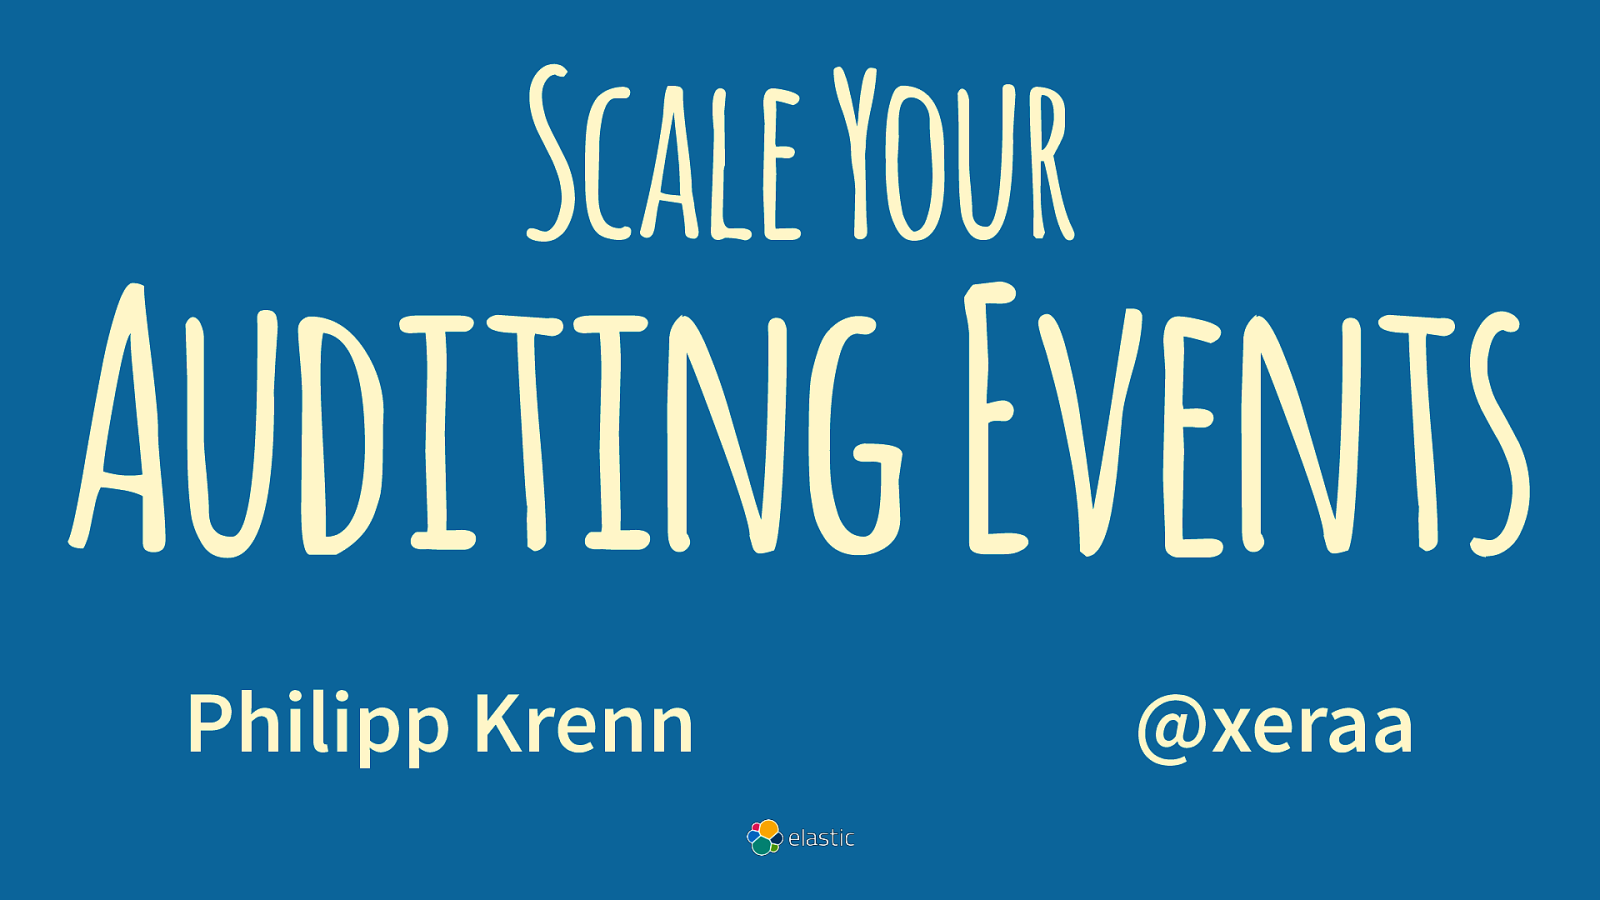 Scale Your Auditing Events by Philipp Krenn